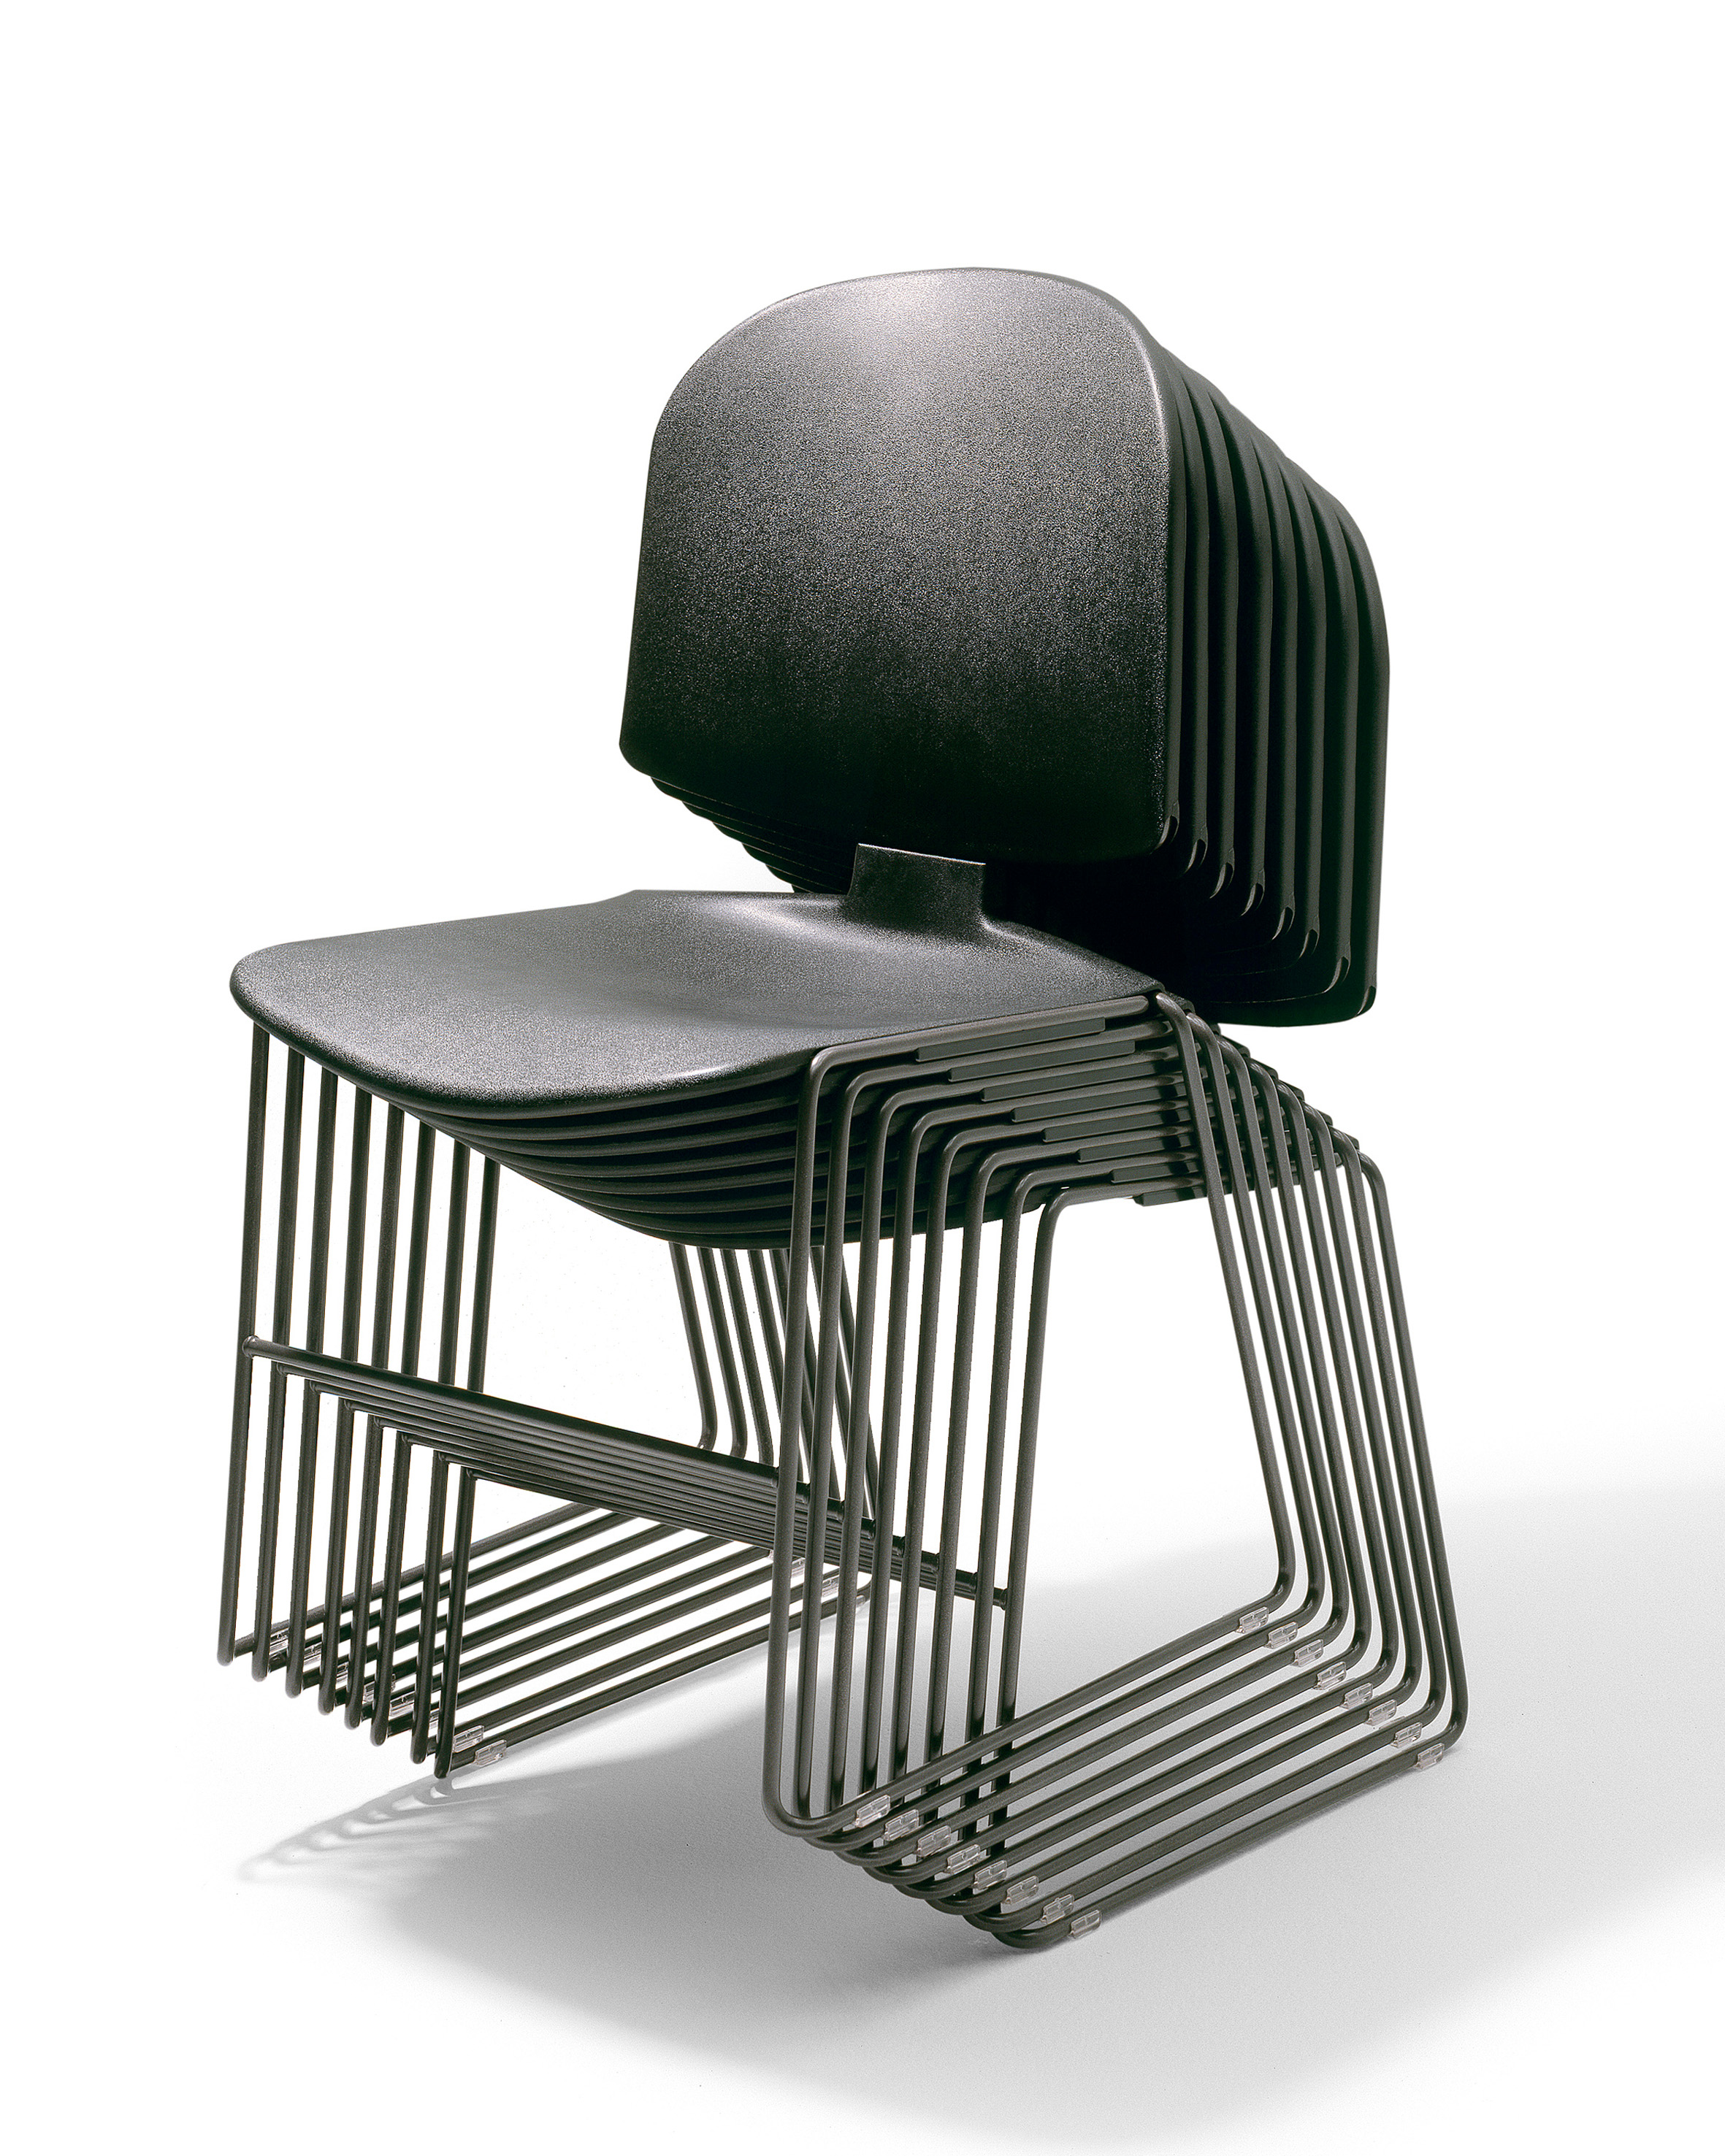 Max-Stacker II chair